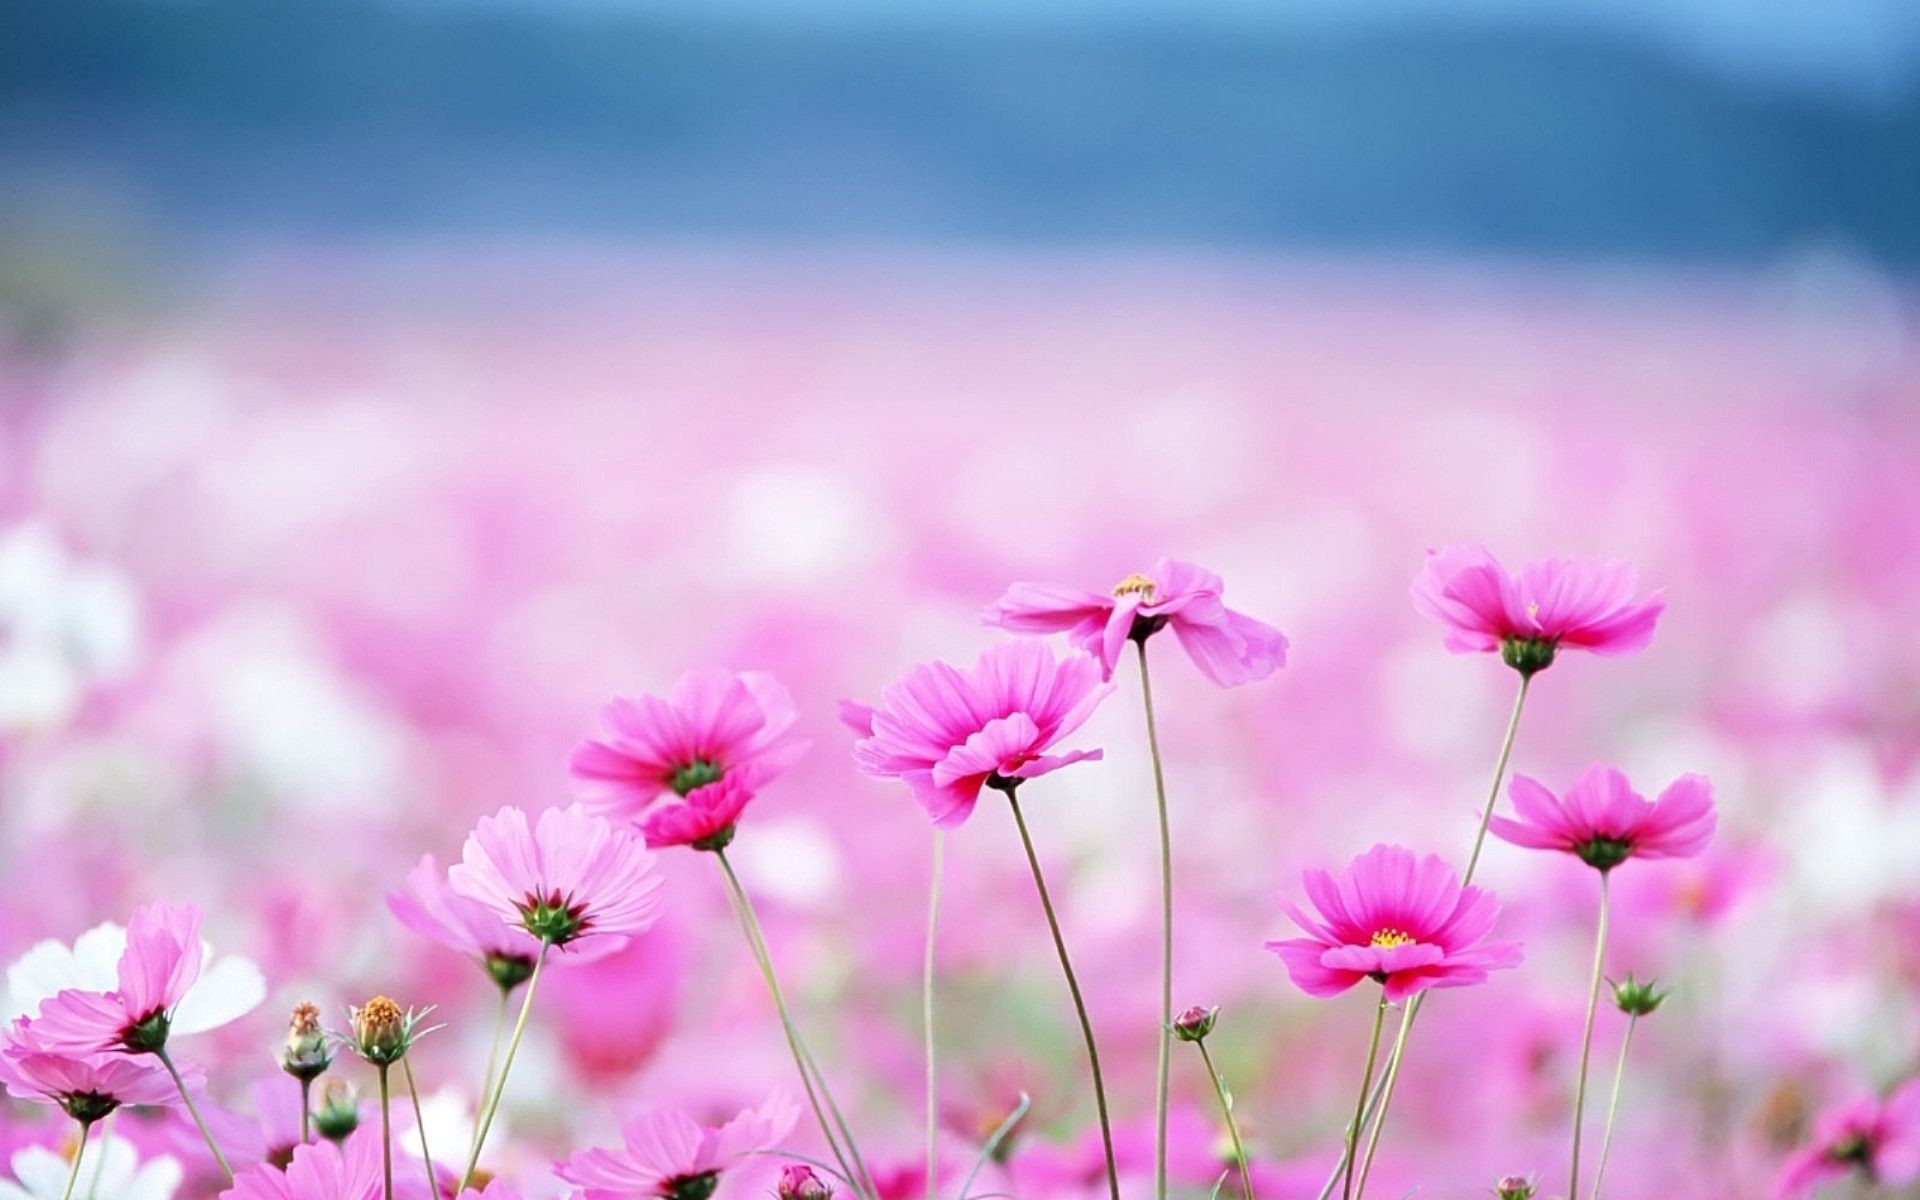 Hd wallpaper pink flowers 72 images 1920x1200 small pink flowers hd wallpaper 1920x1080 small pink flowers hd mightylinksfo